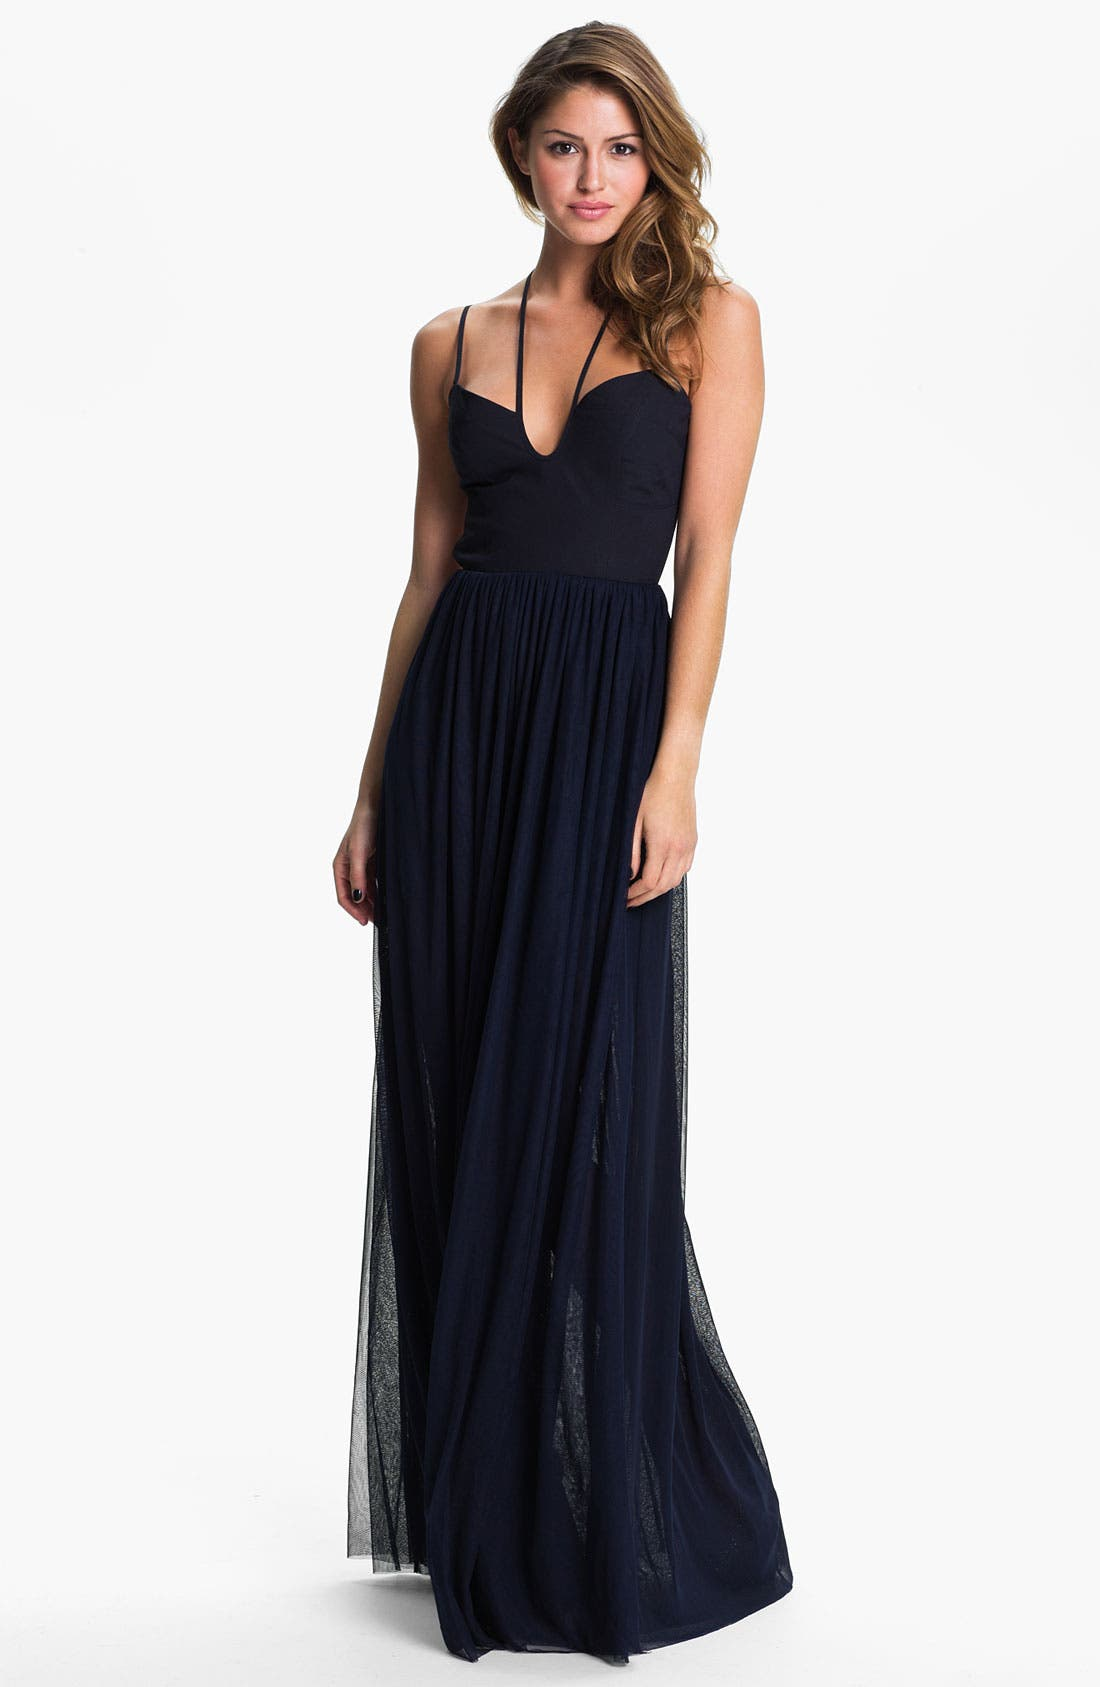 Alternate Image 1 Selected - Keepsake the Label 'Smoke & Mirrors' Back Cutout Mesh Maxi Dress